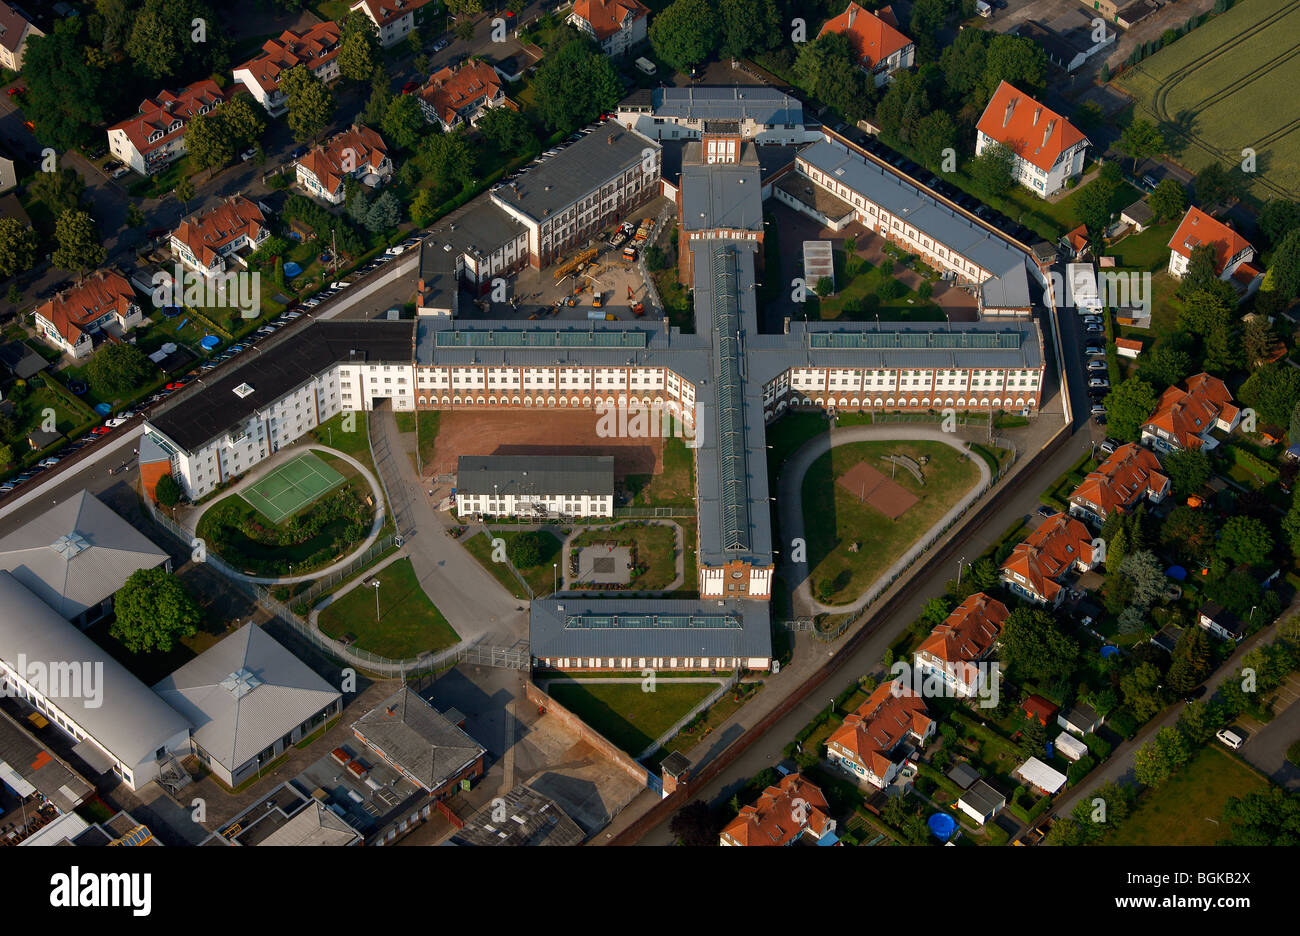 Aerial photo, prison, detention, JVA Werl prison with new roof, Werl, North Rhine-Westphalia, Germany, Europe - Stock Image